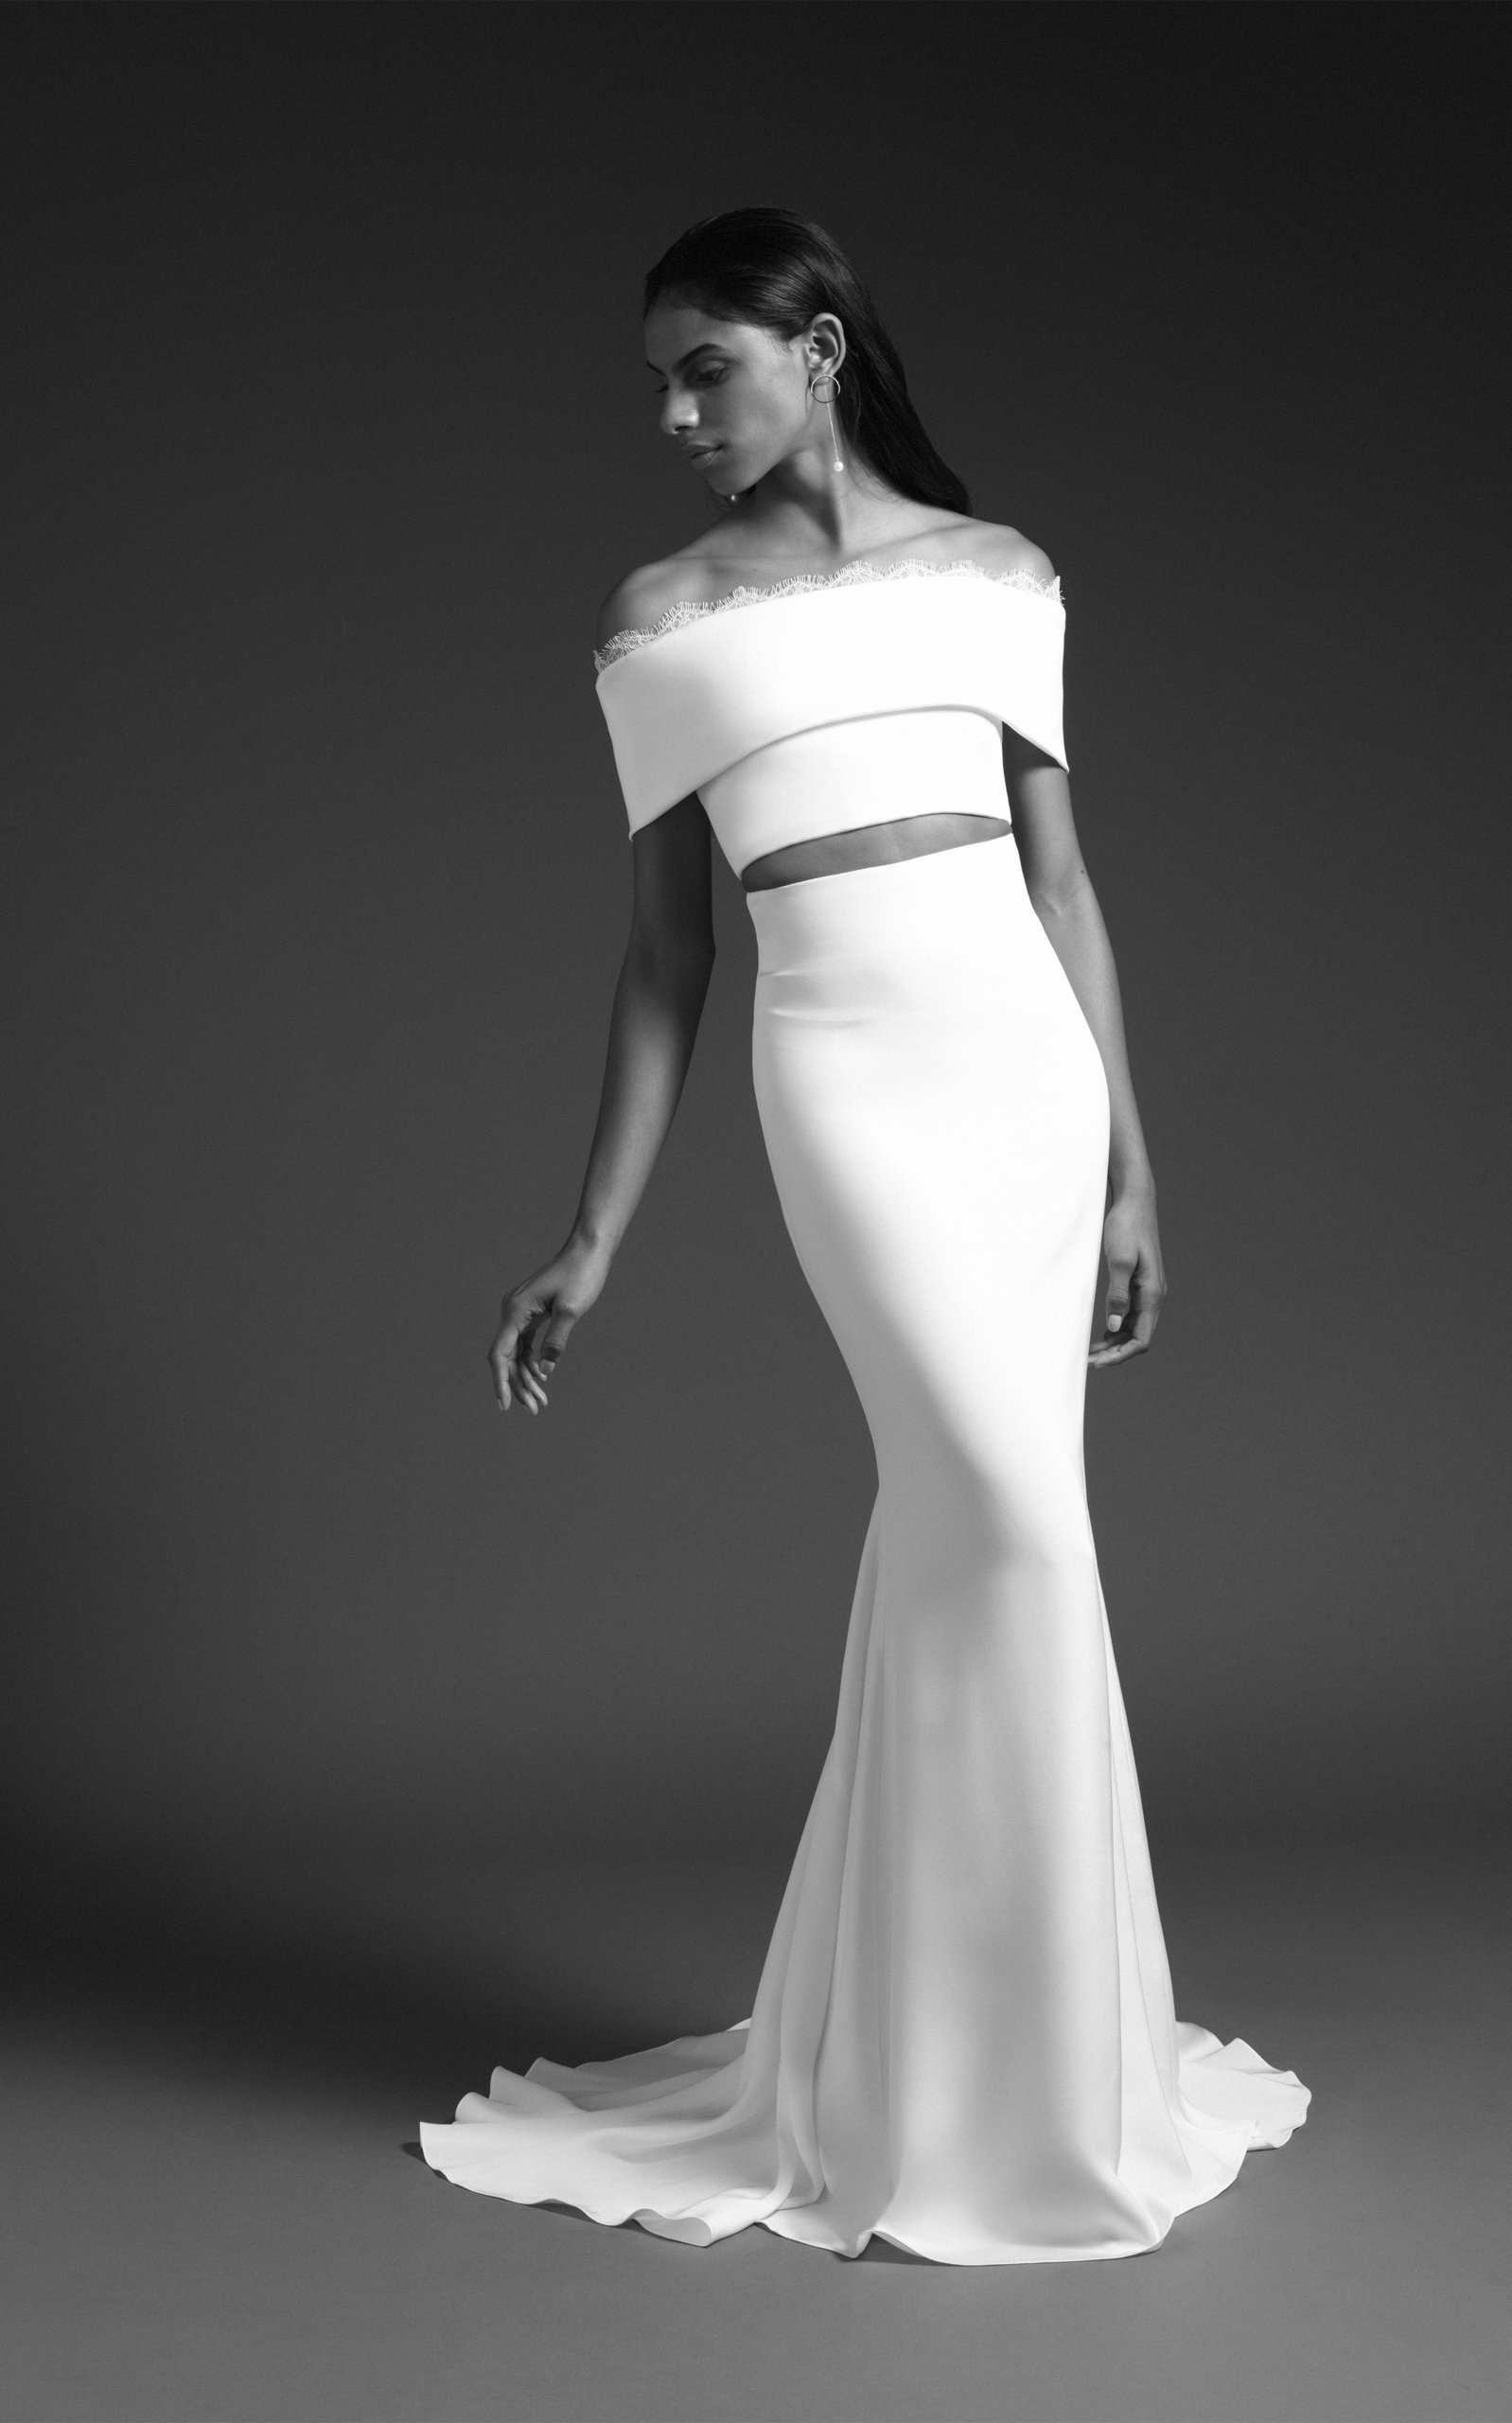 1a5e1432fc94bb Grace Off Shoulder Crop Top With Lace Trim by Cushnie Bridal